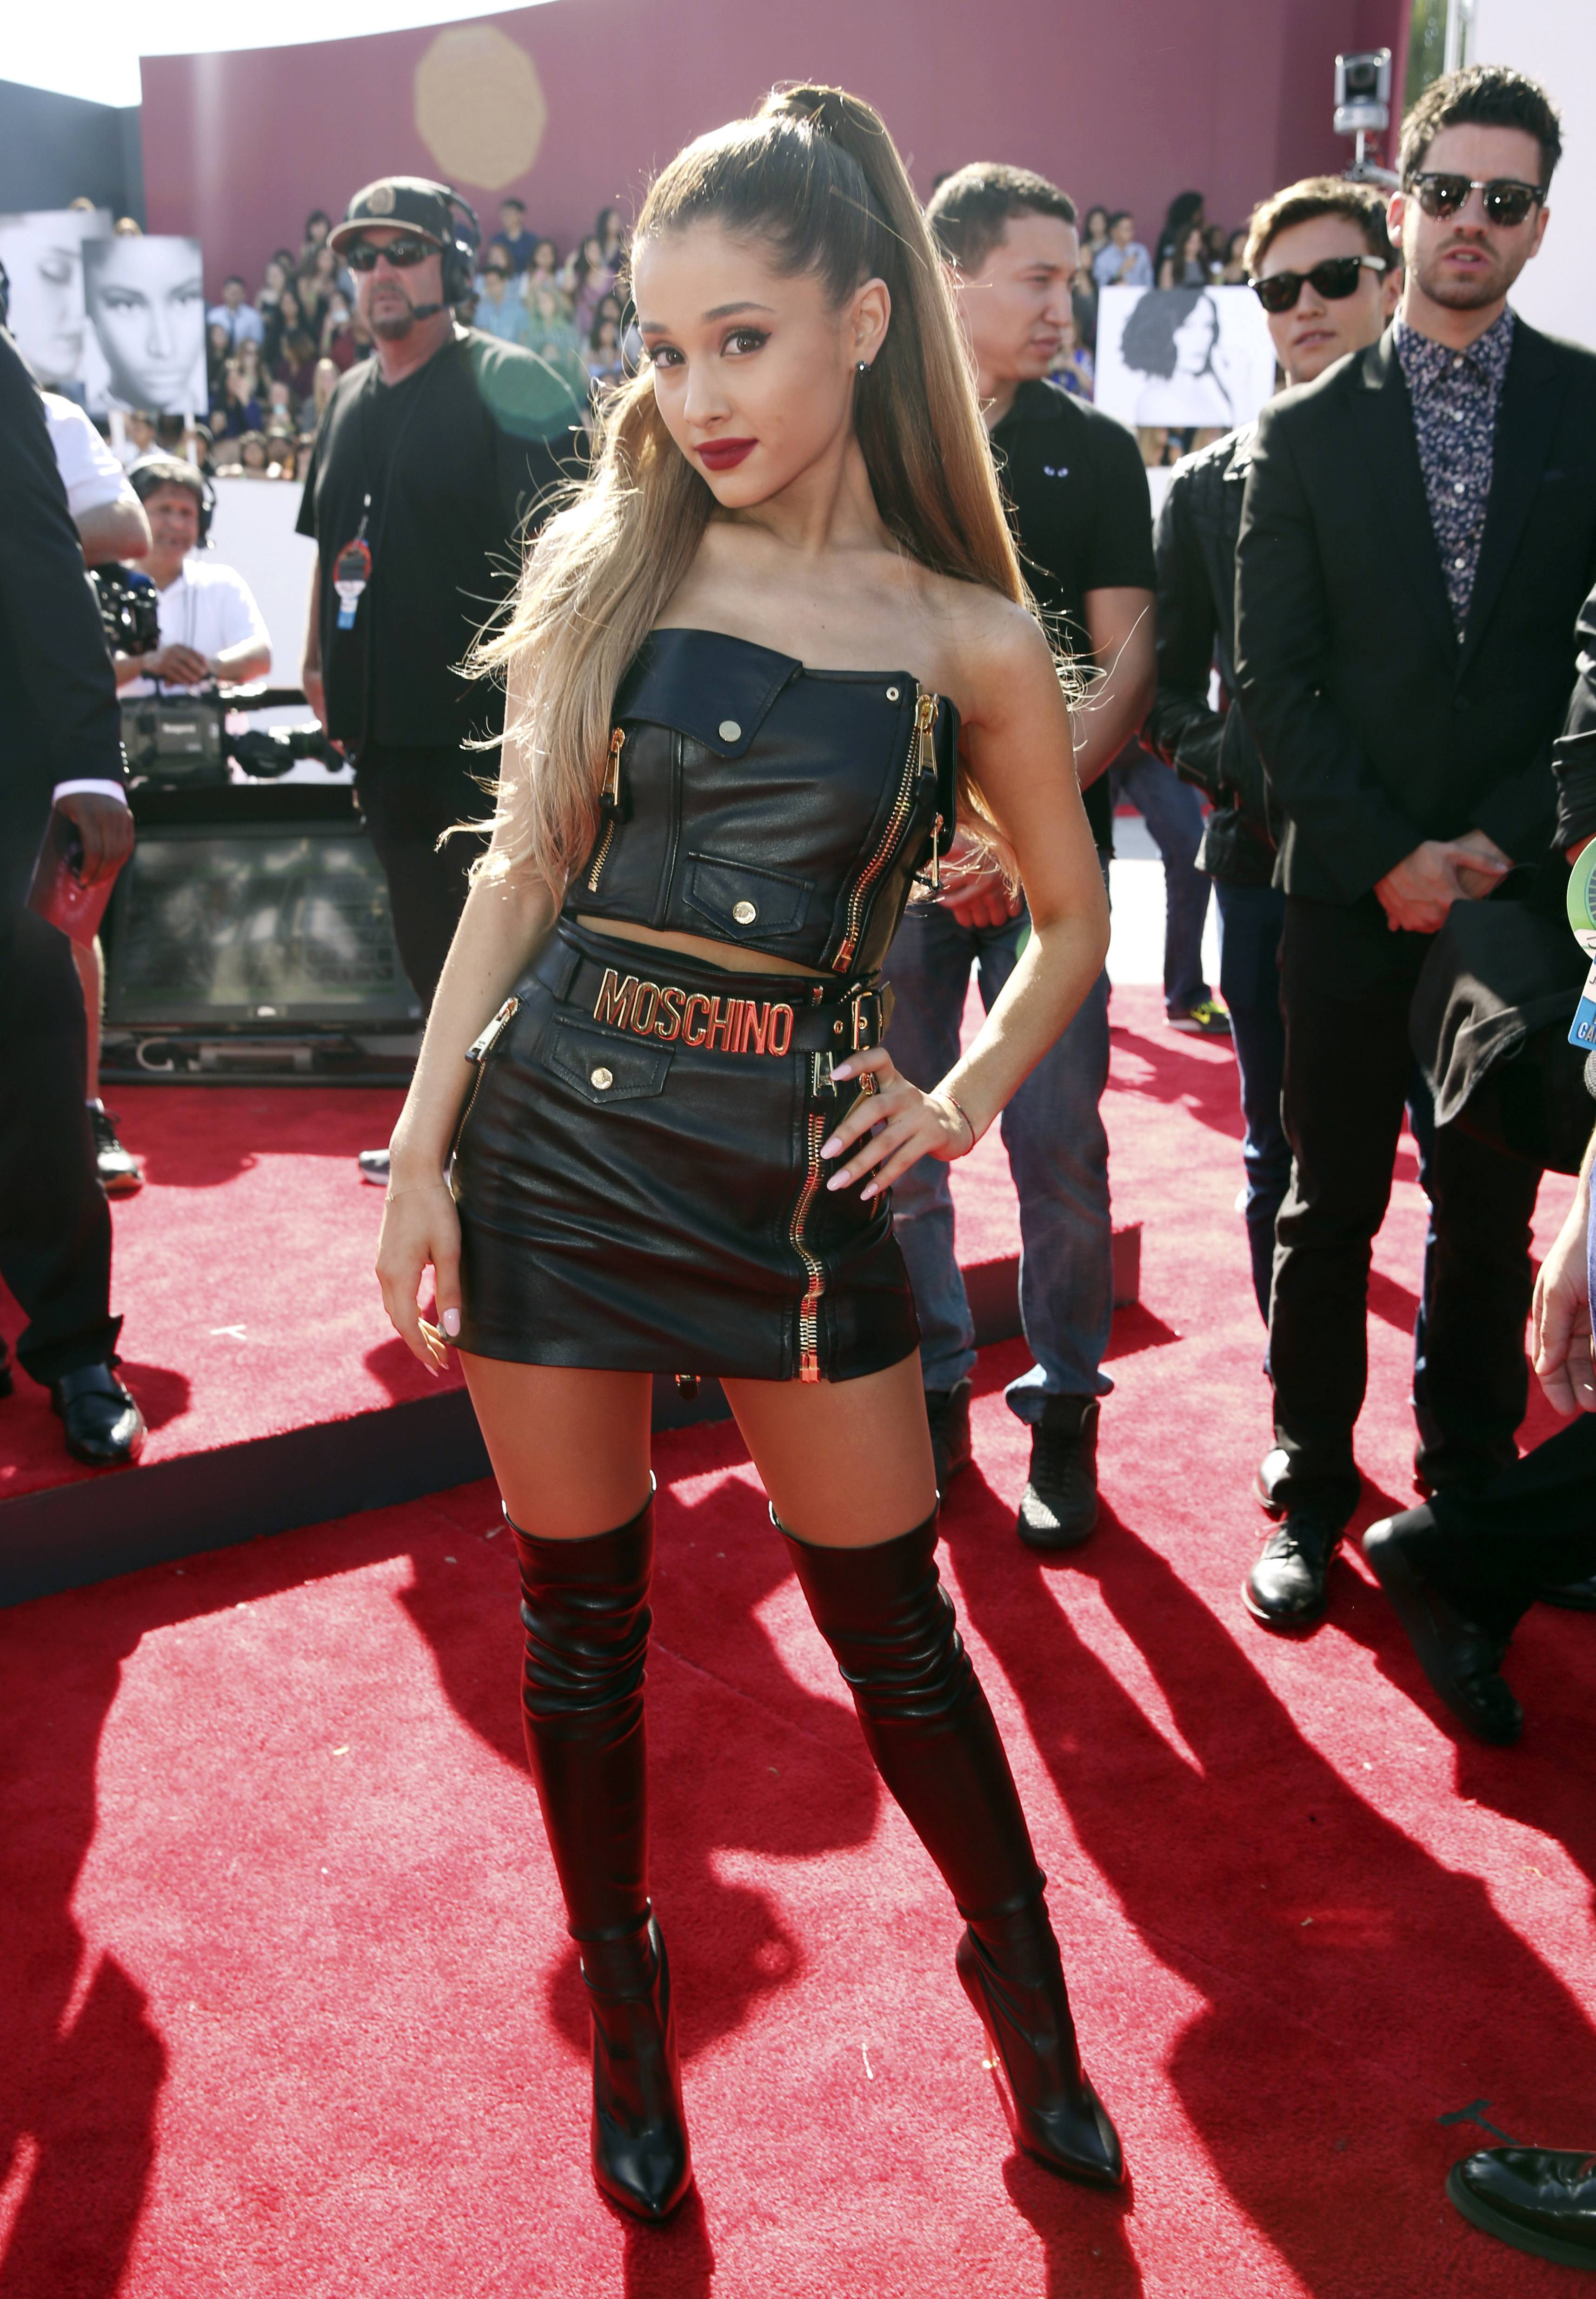 WORST: Ariana Grande just disappears in this bad idea of an outfit. Next time follow Coco Chanel's advice and take off one thing (that horrible belt) before you leave the house.